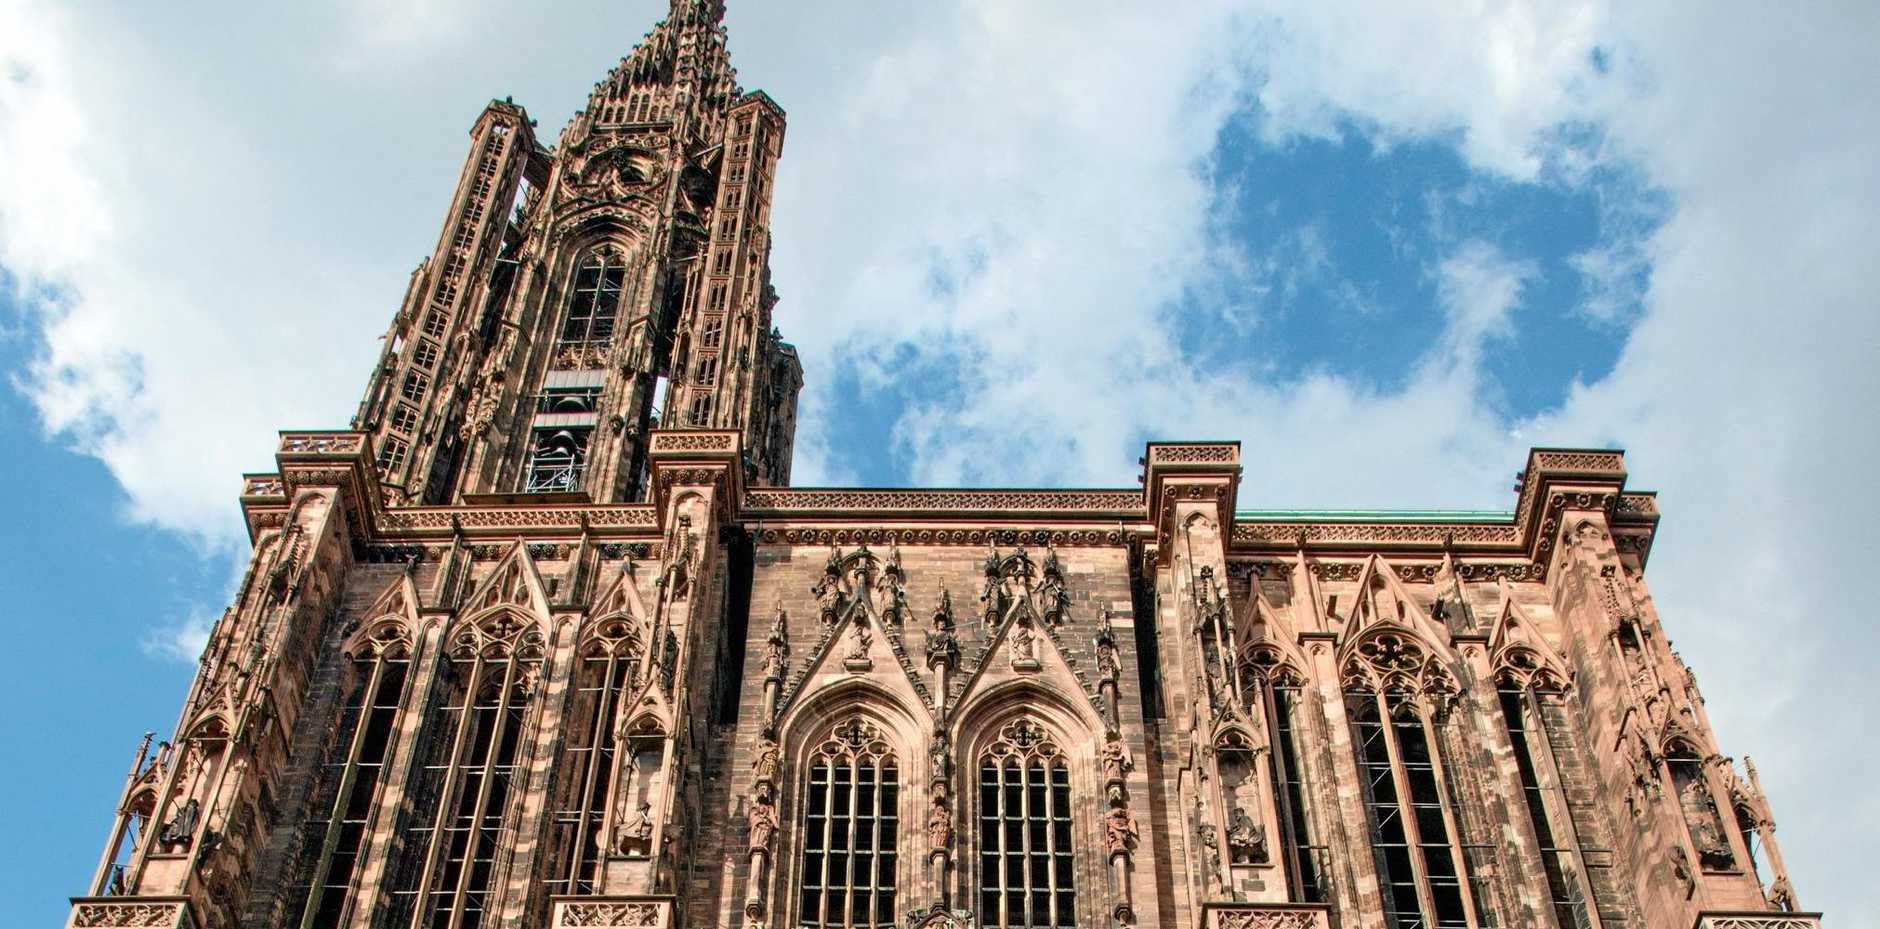 The Cathedrale Notre-Dame in Strasbourg, France, is the sixth tallest church in the world.